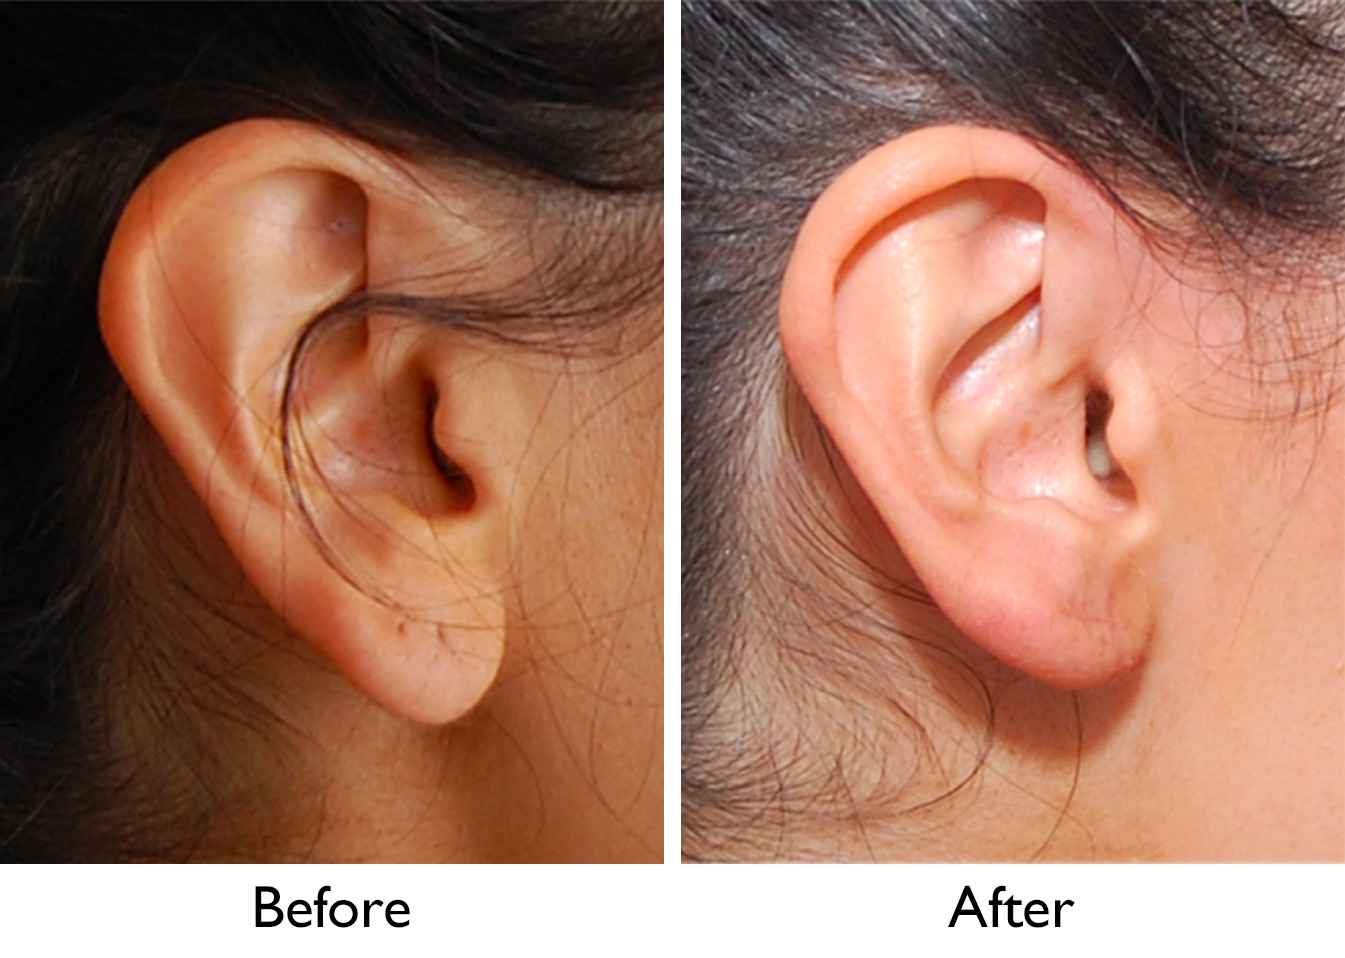 how to make your ears smaller without surgery